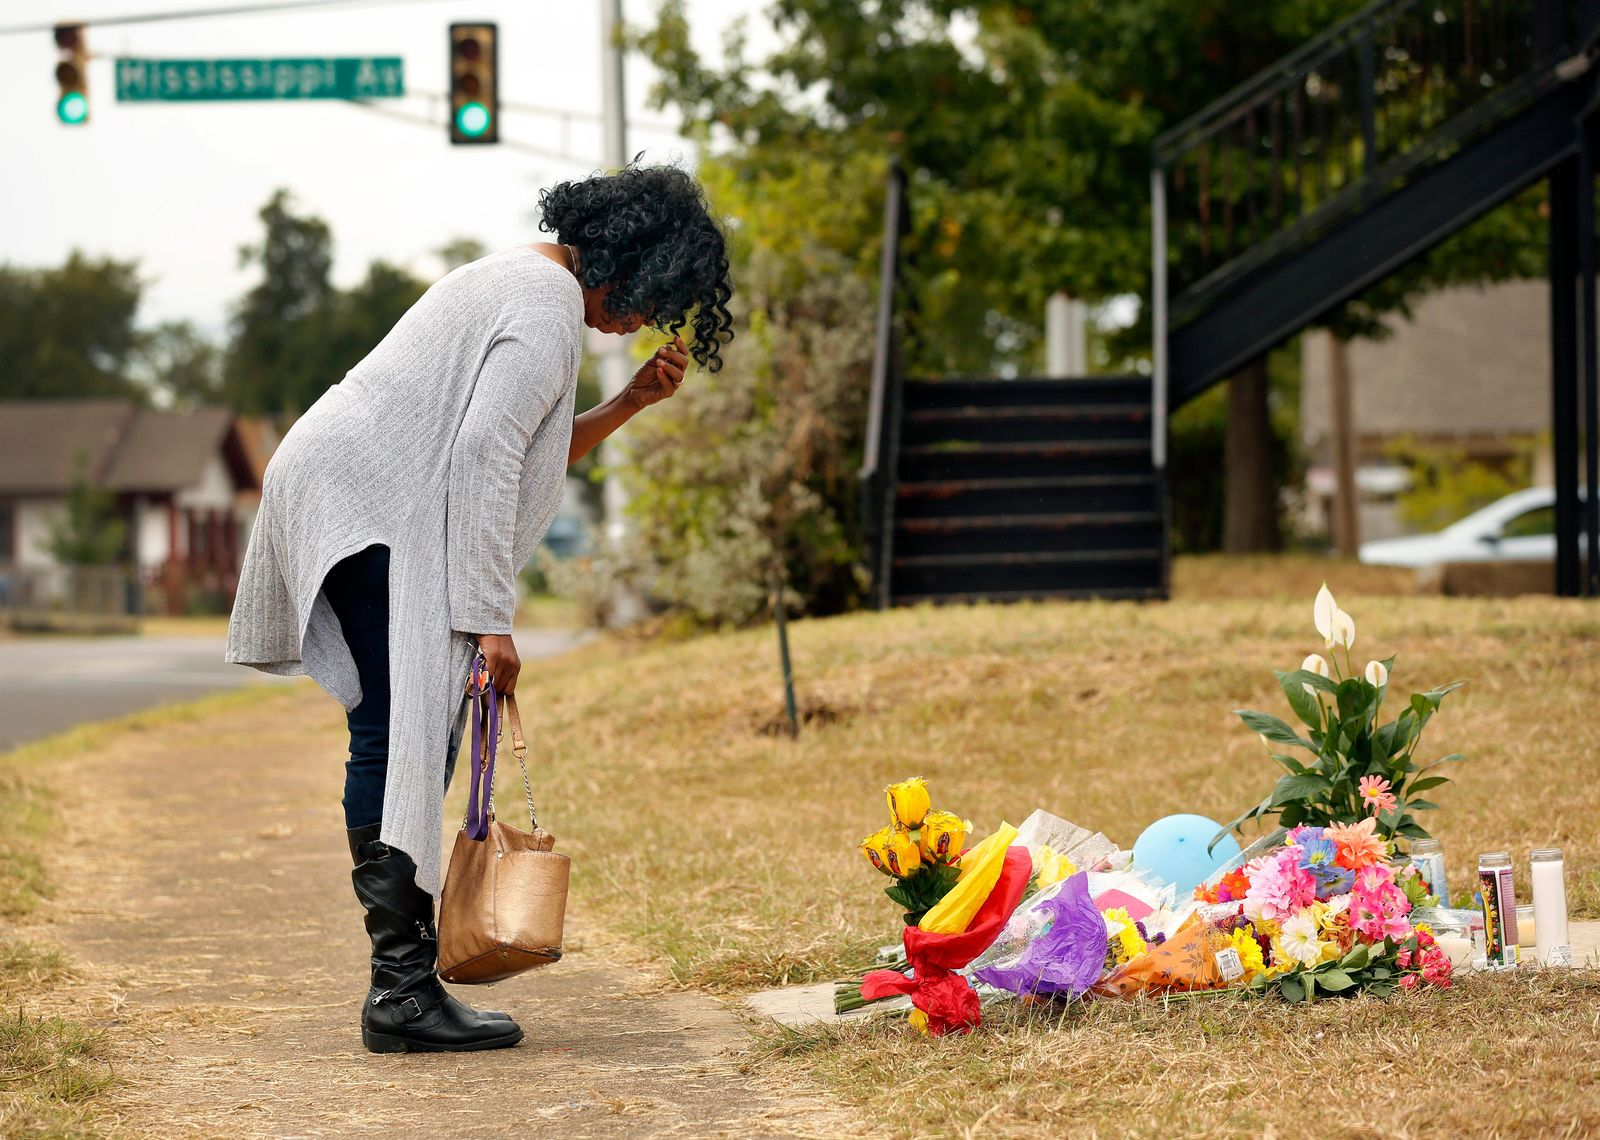 Lynda Menefee, of Fort Worth, makes the sign of the cross after leaving flowers on the front sidewalk of Atatiana Jefferson's home on E. Allen Ave in Fort Worth, Texas, Tuesday, Oct. 15, 2019. (Tom Fox/The Dallas Morning News via AP)